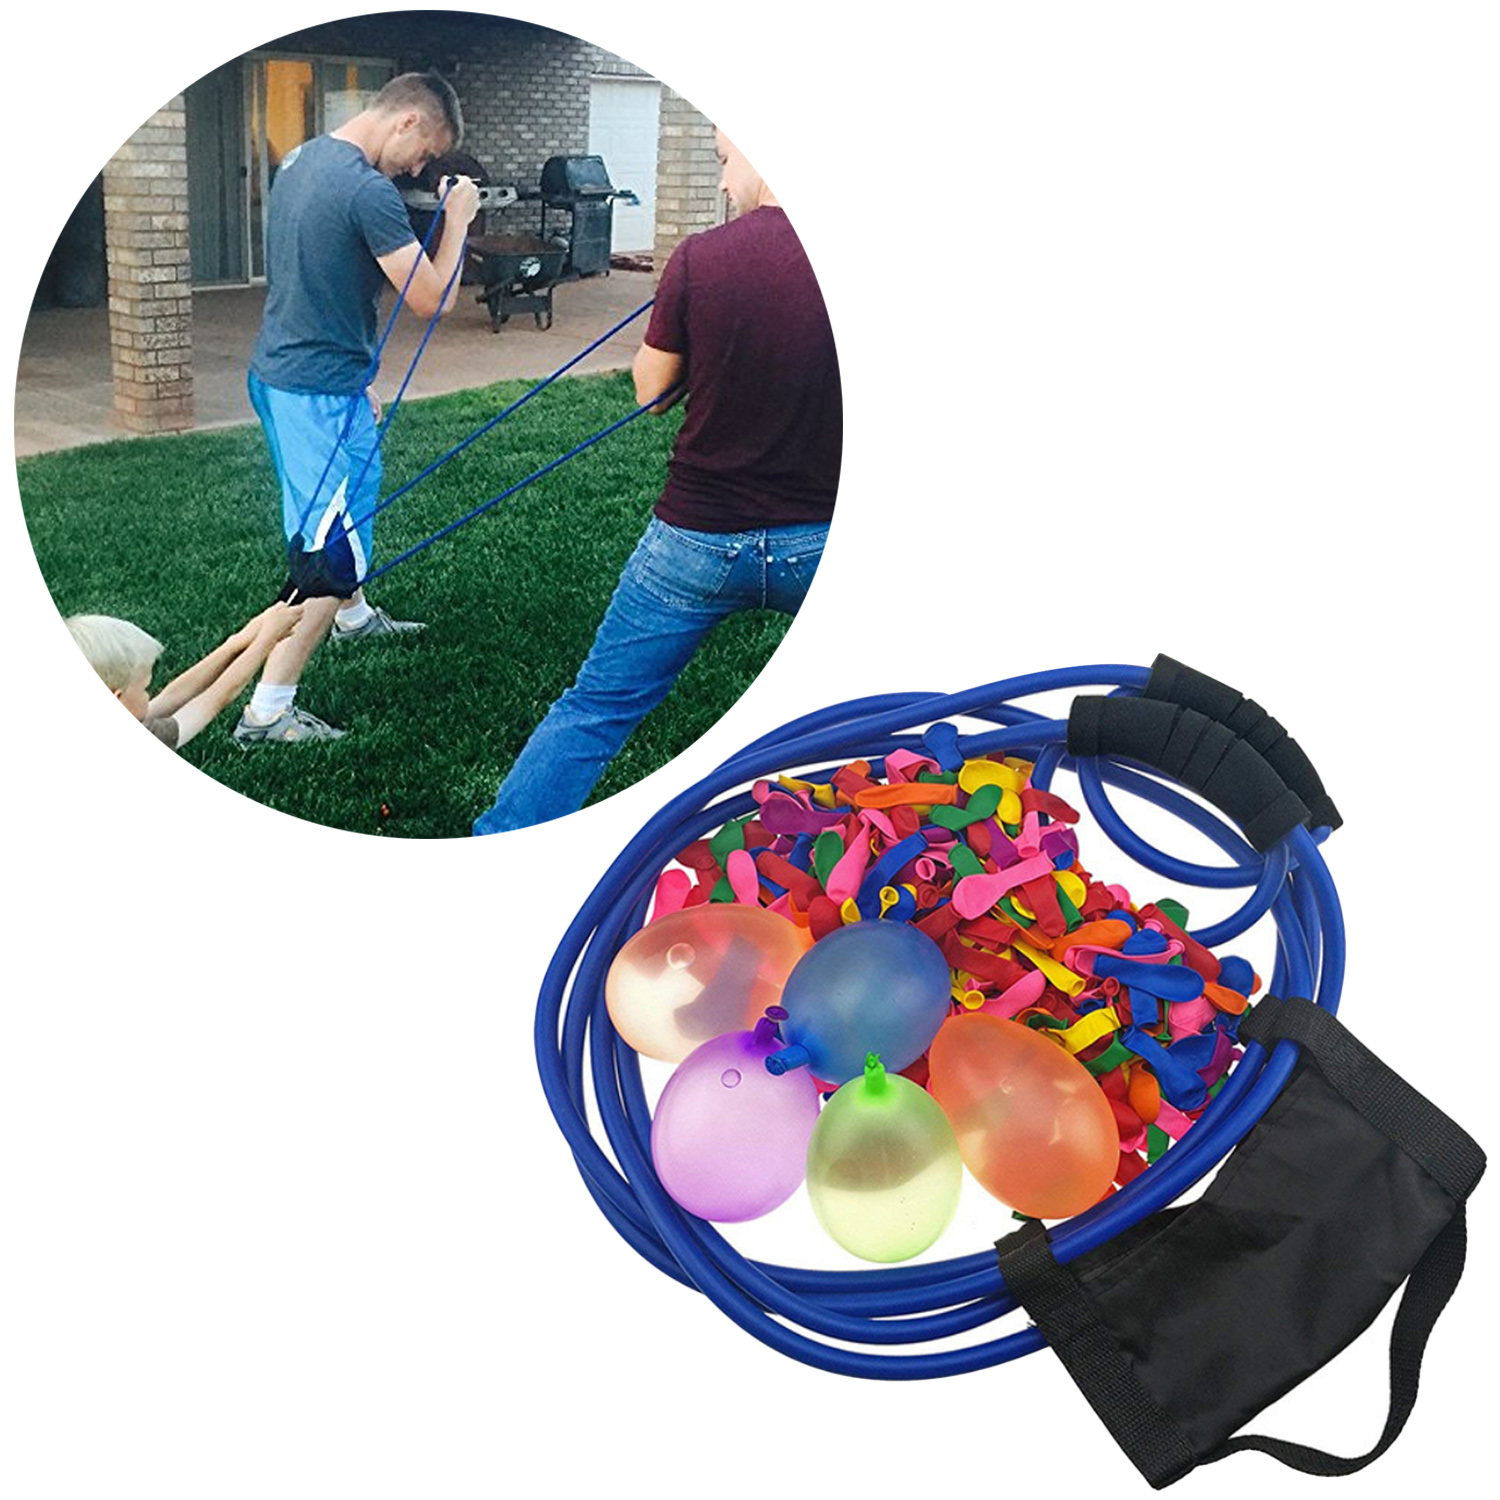 Funny 3 Person Water Balloon Launcher Catapult Slingshot with 100pcs Balloons for Kids Adults Outdoor Games